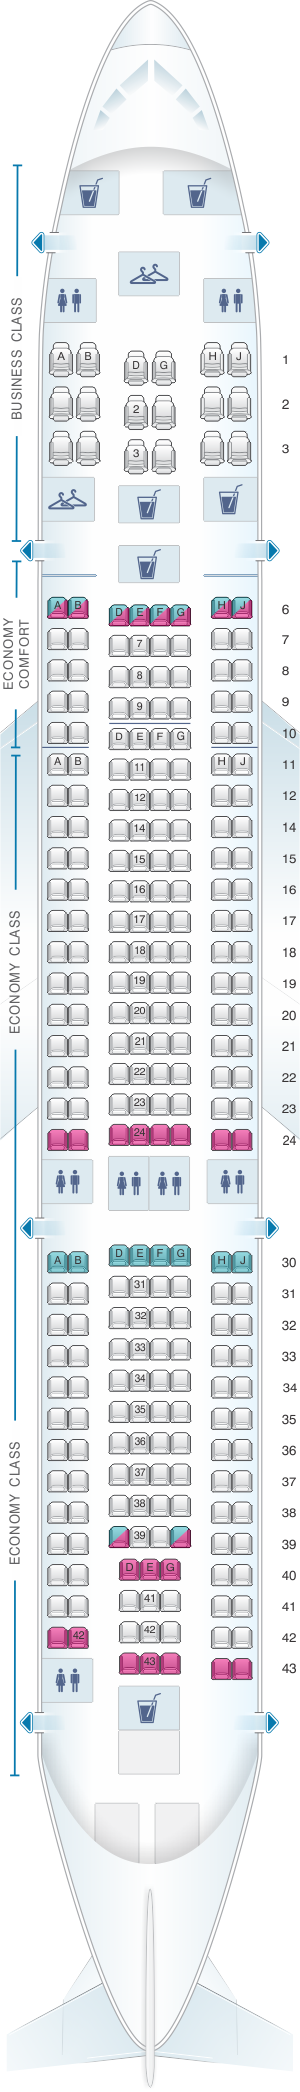 Seat map for KLM Airbus A330 200